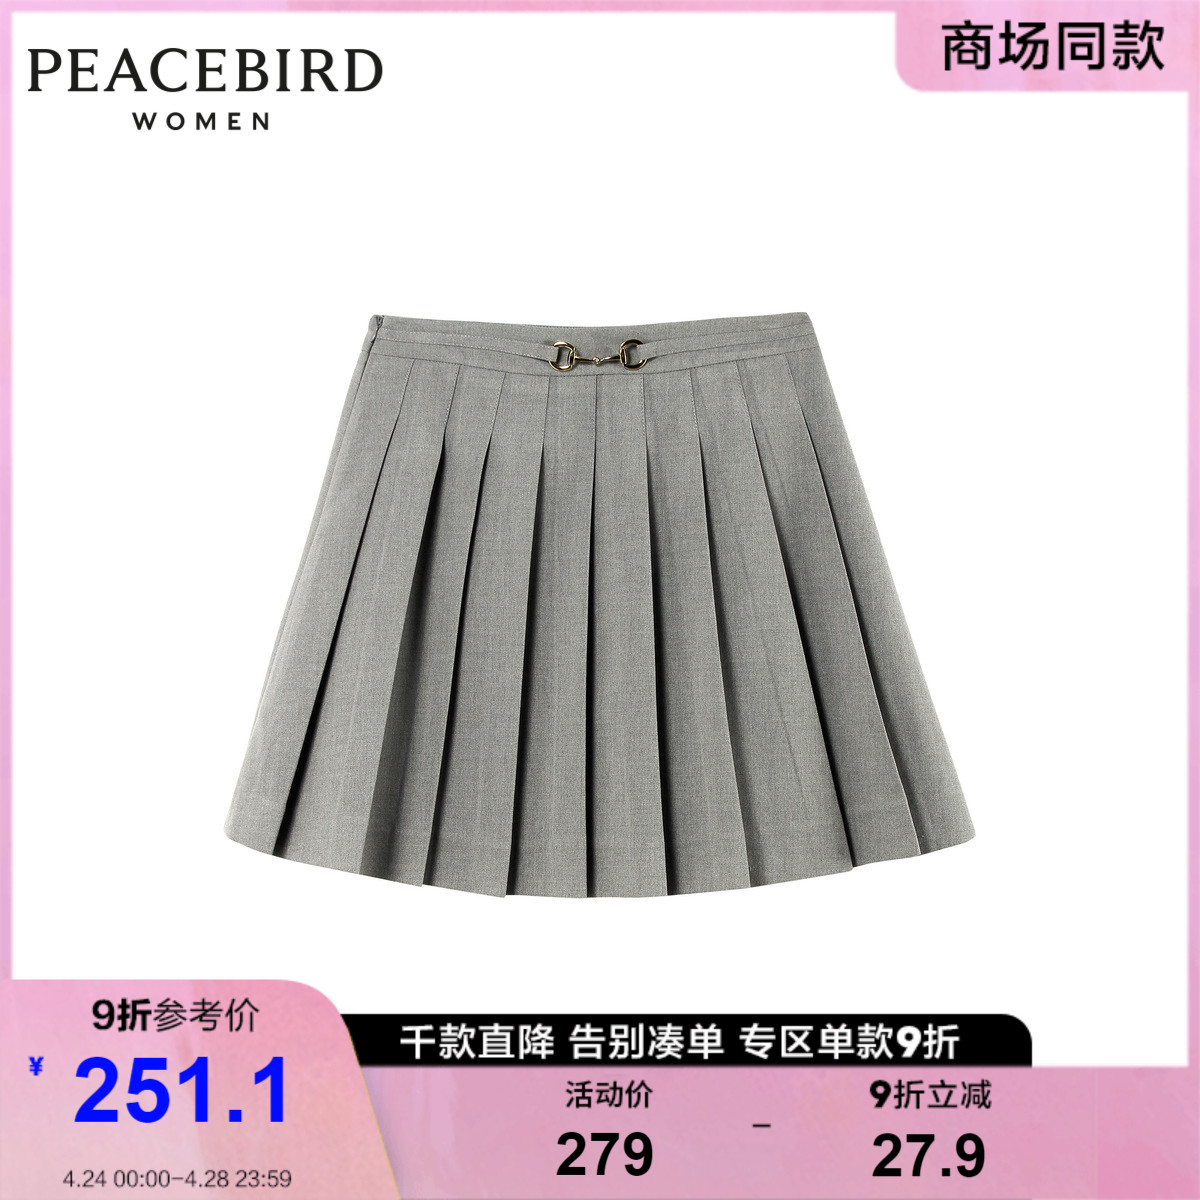 Shopping malls with the same paragraph Peacebird 2020 autumn and winter new women's fashion Sven skirt skirt A1GEA4817